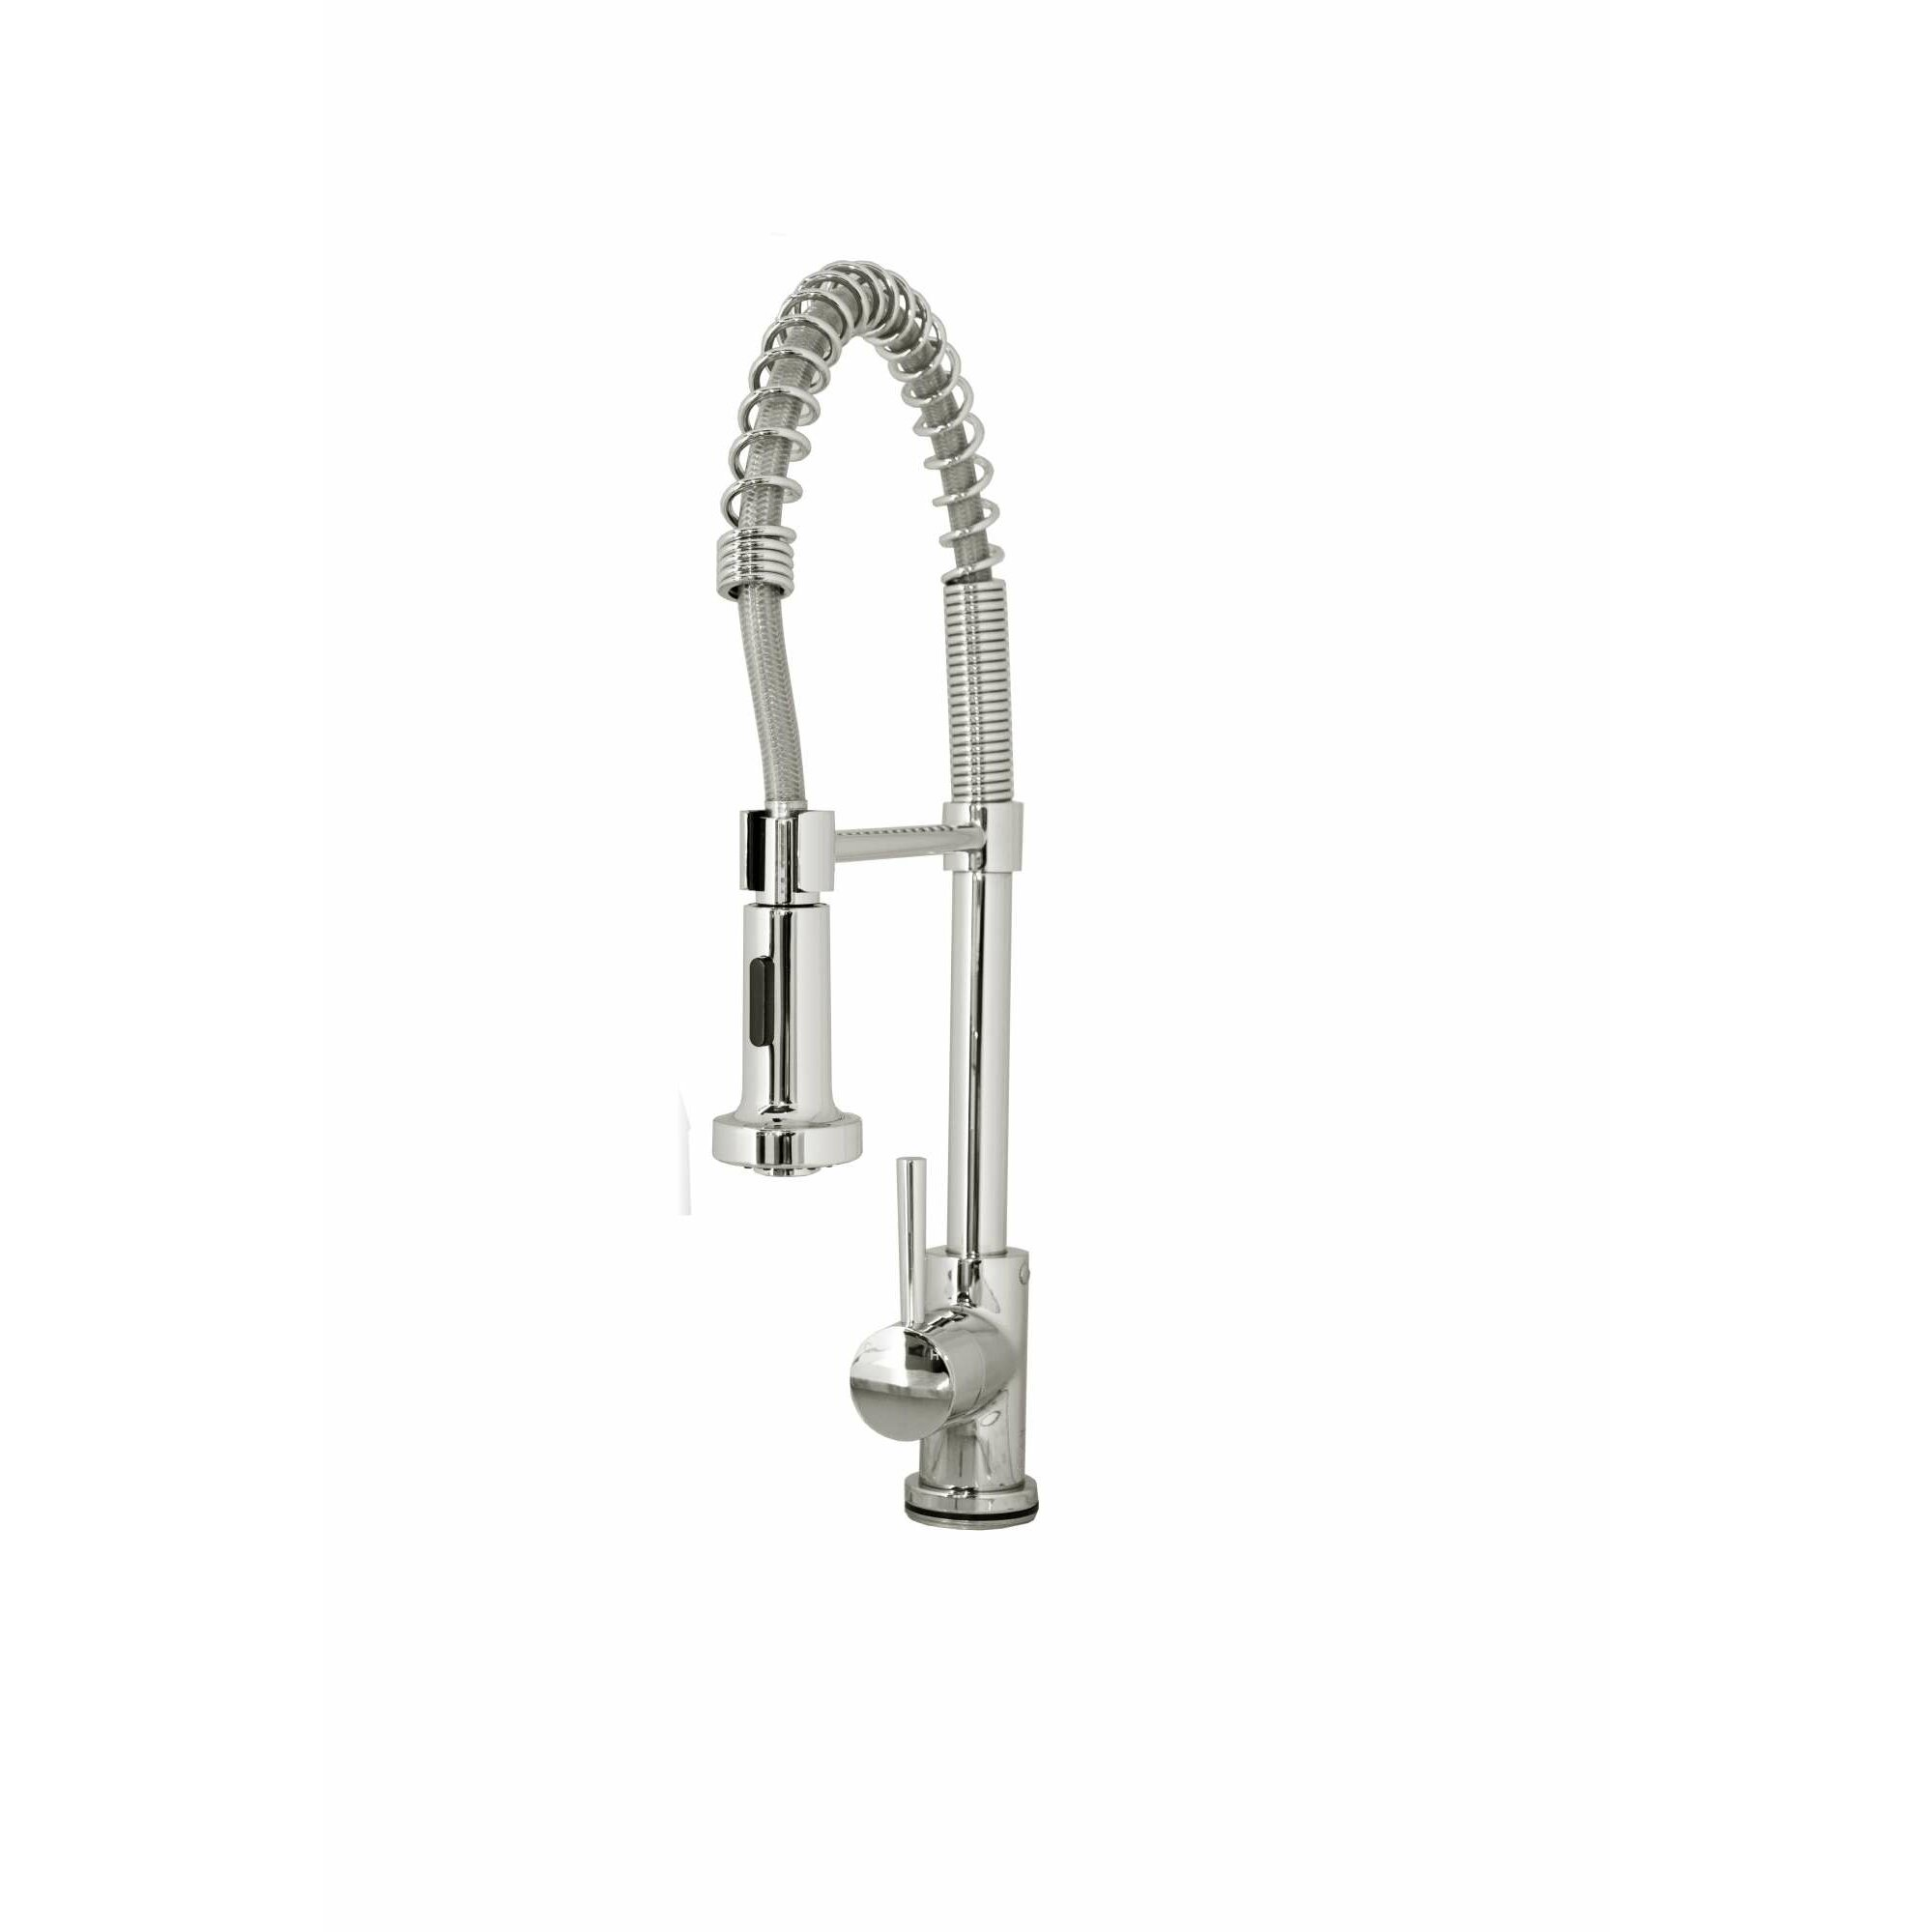 Bathroom Faucet Single Hole. Image Result For Bathroom Faucet Single Hole